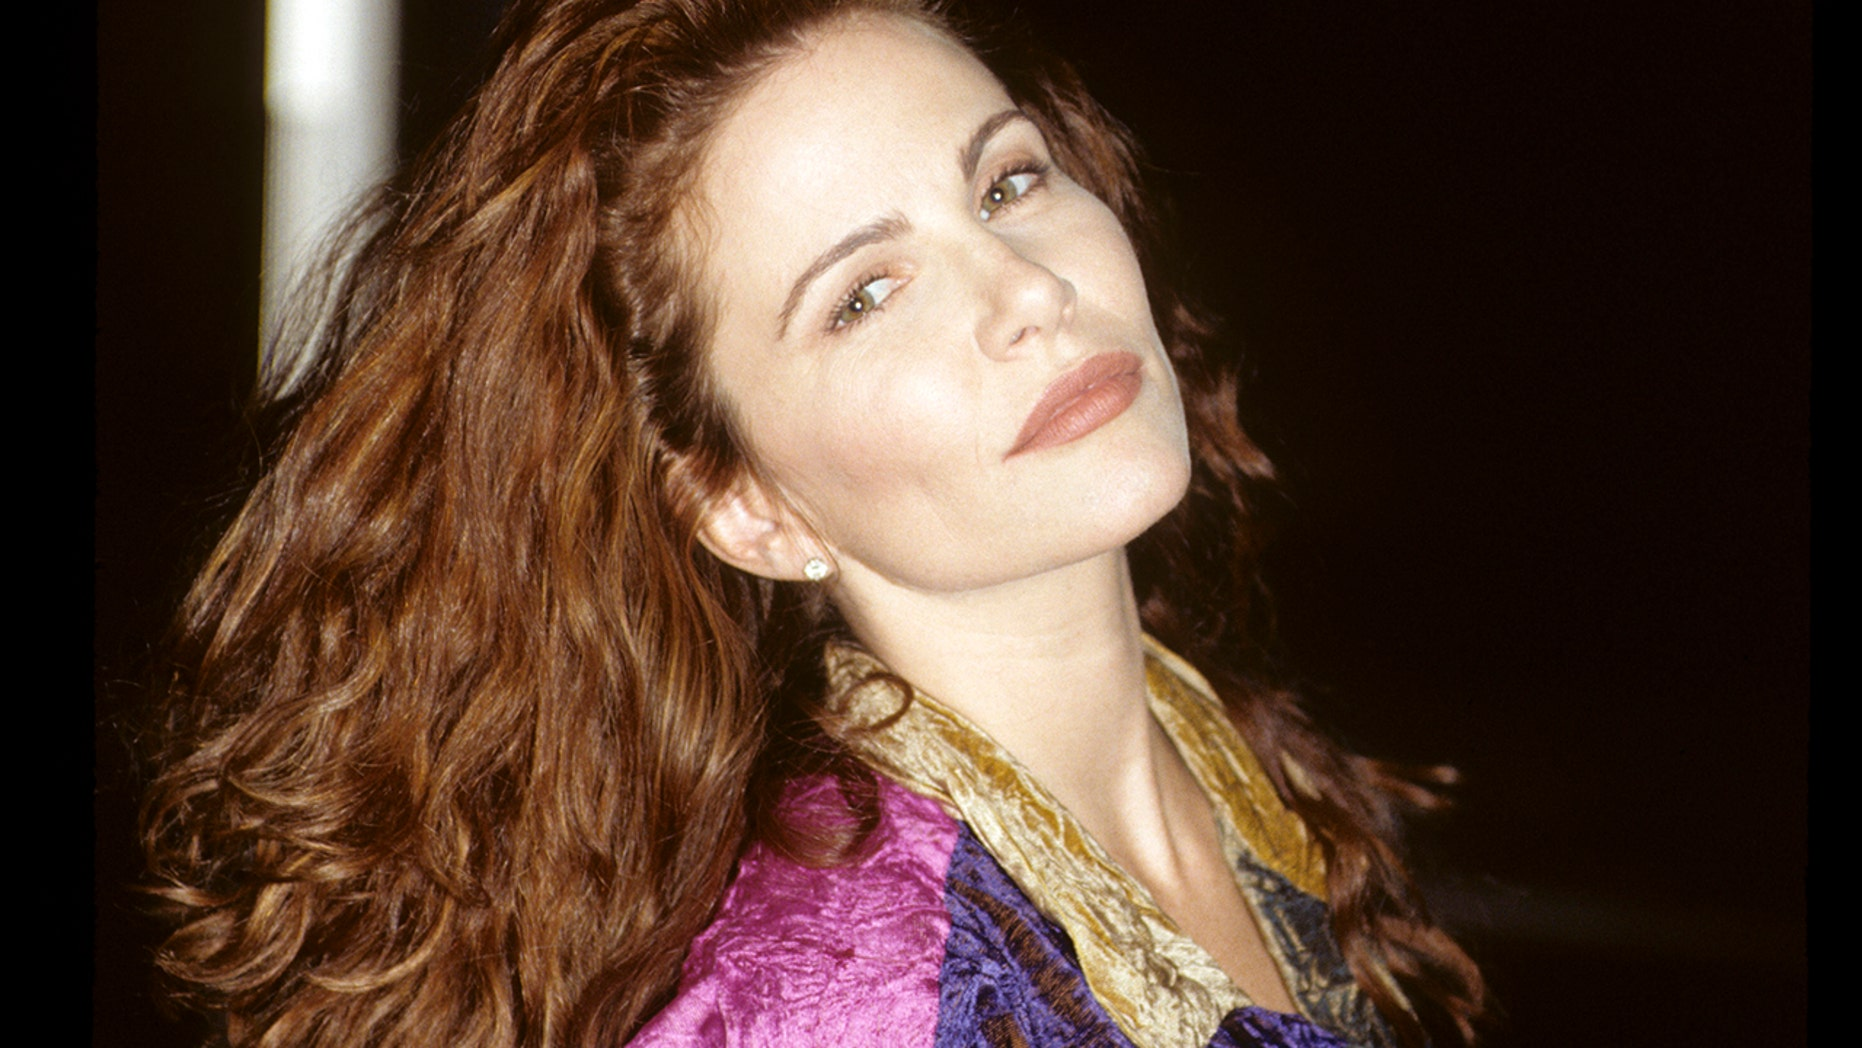 Pics Tawny Kitaen nudes (31 foto and video), Pussy, Fappening, Twitter, cameltoe 2019